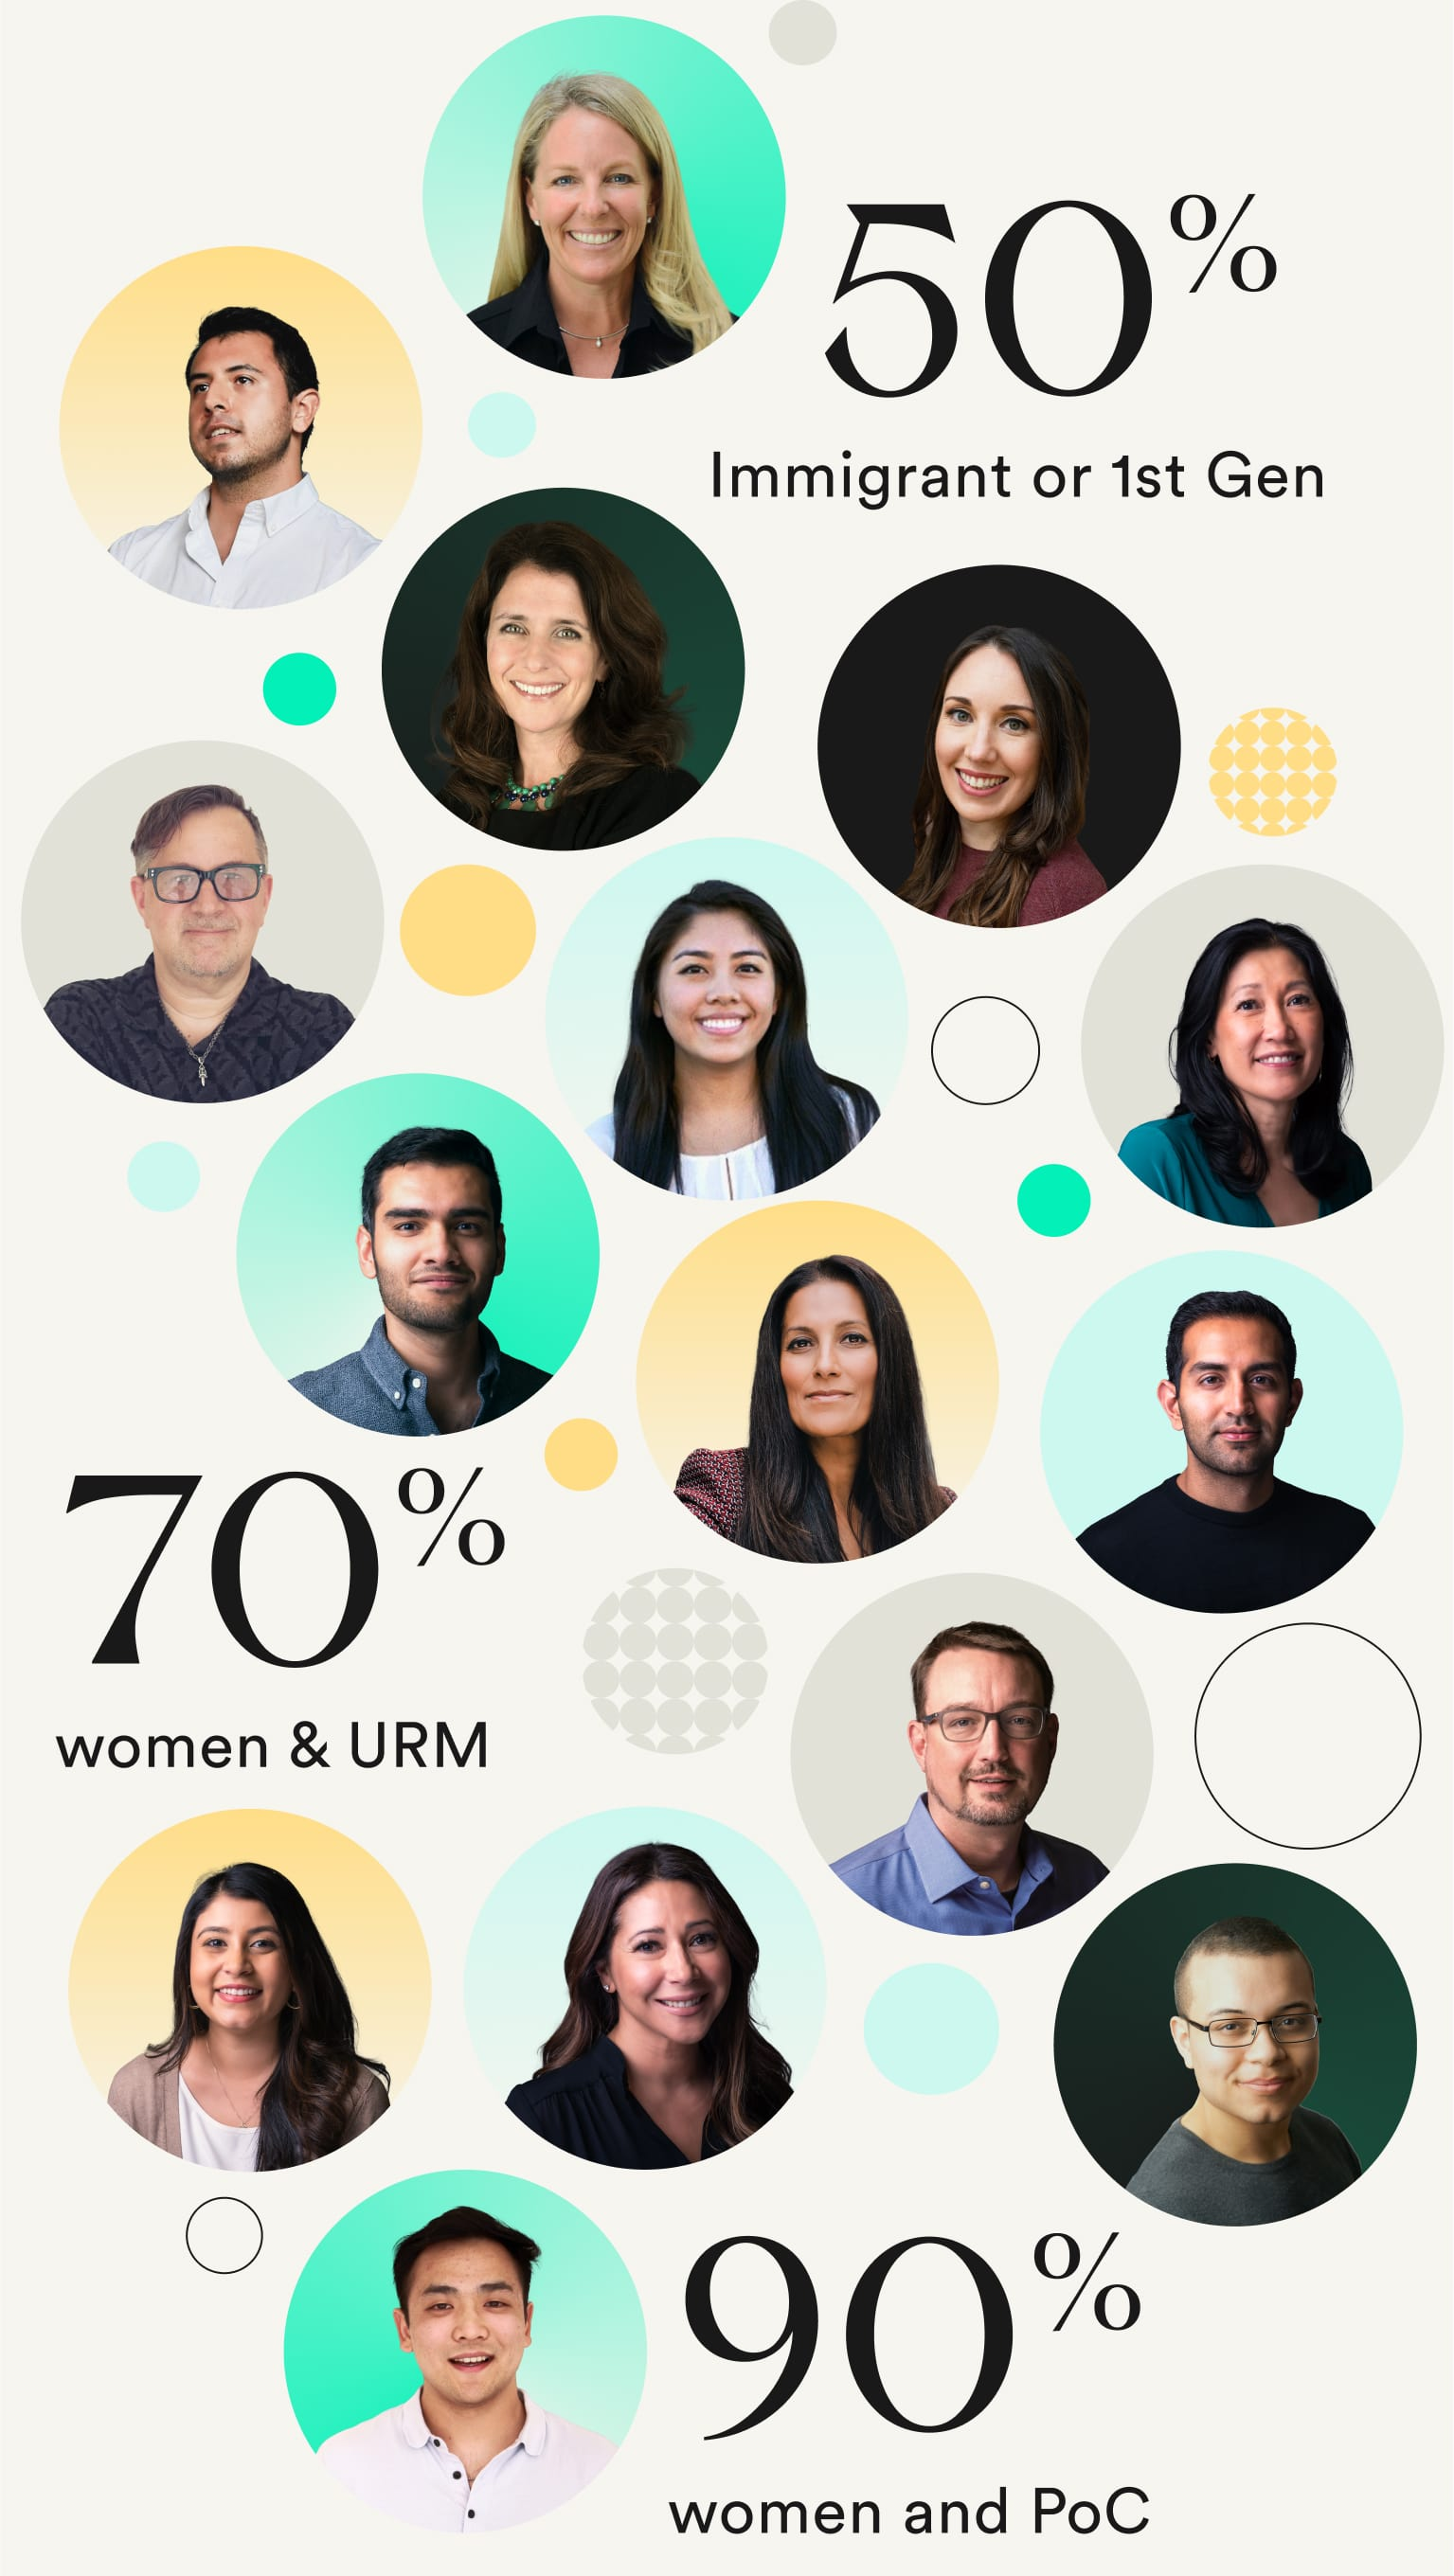 Portraits of our team members: 50% immigrant or 1st Generation, 70% women and URM, 90% women and PoC.